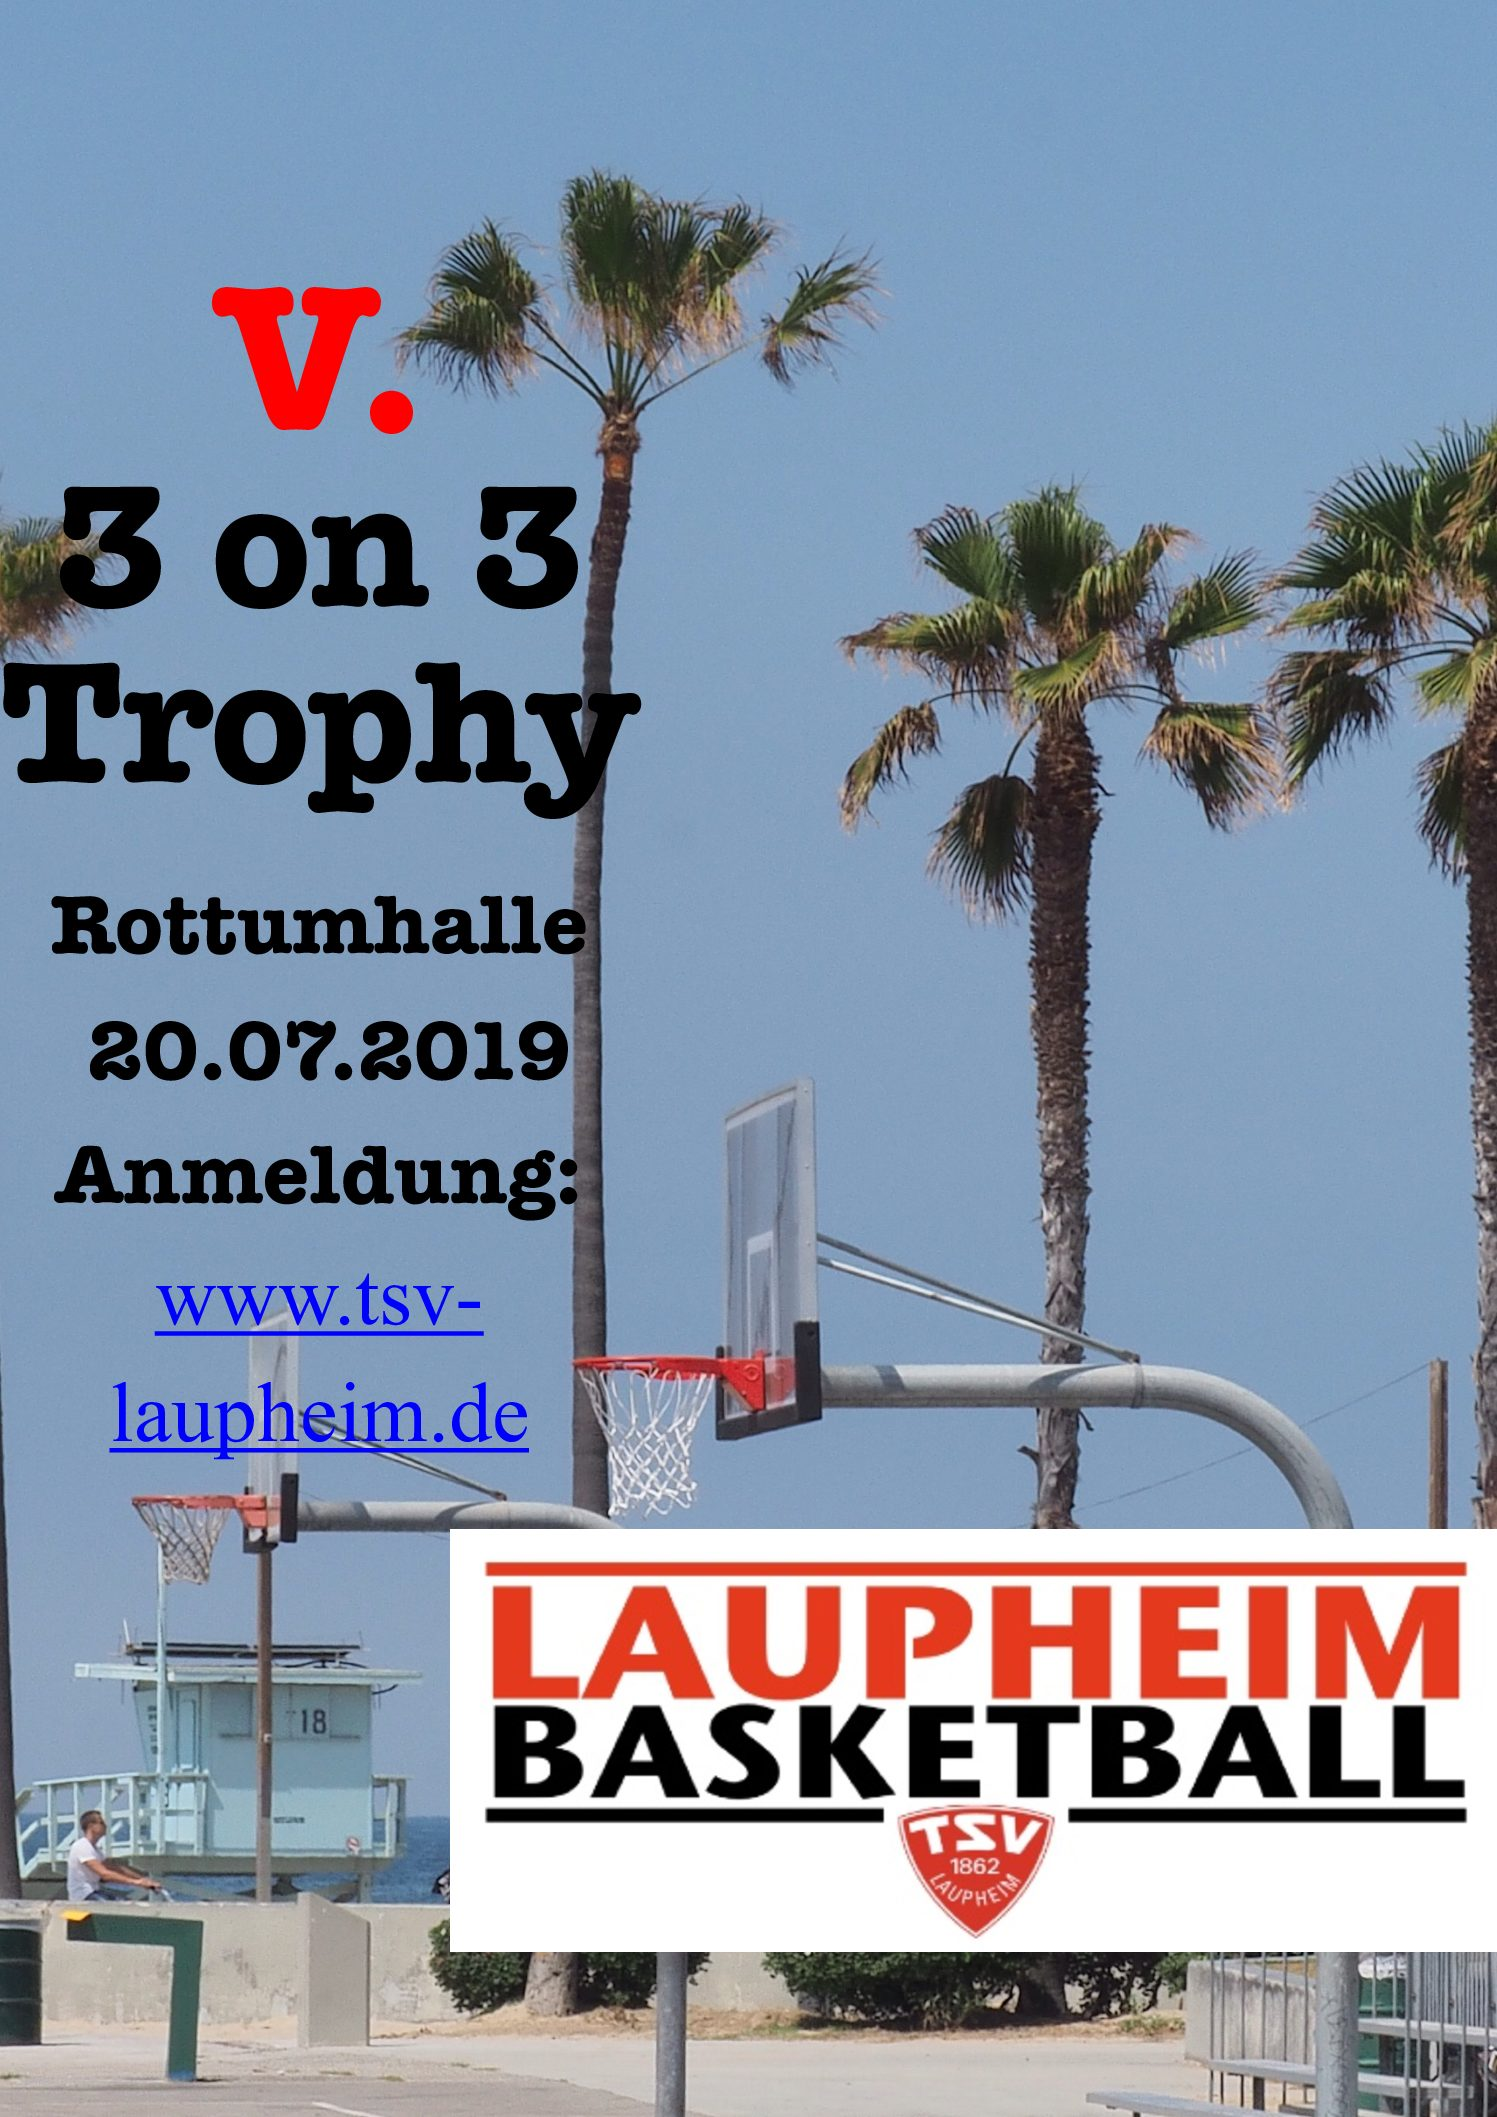 3on3 Trophy